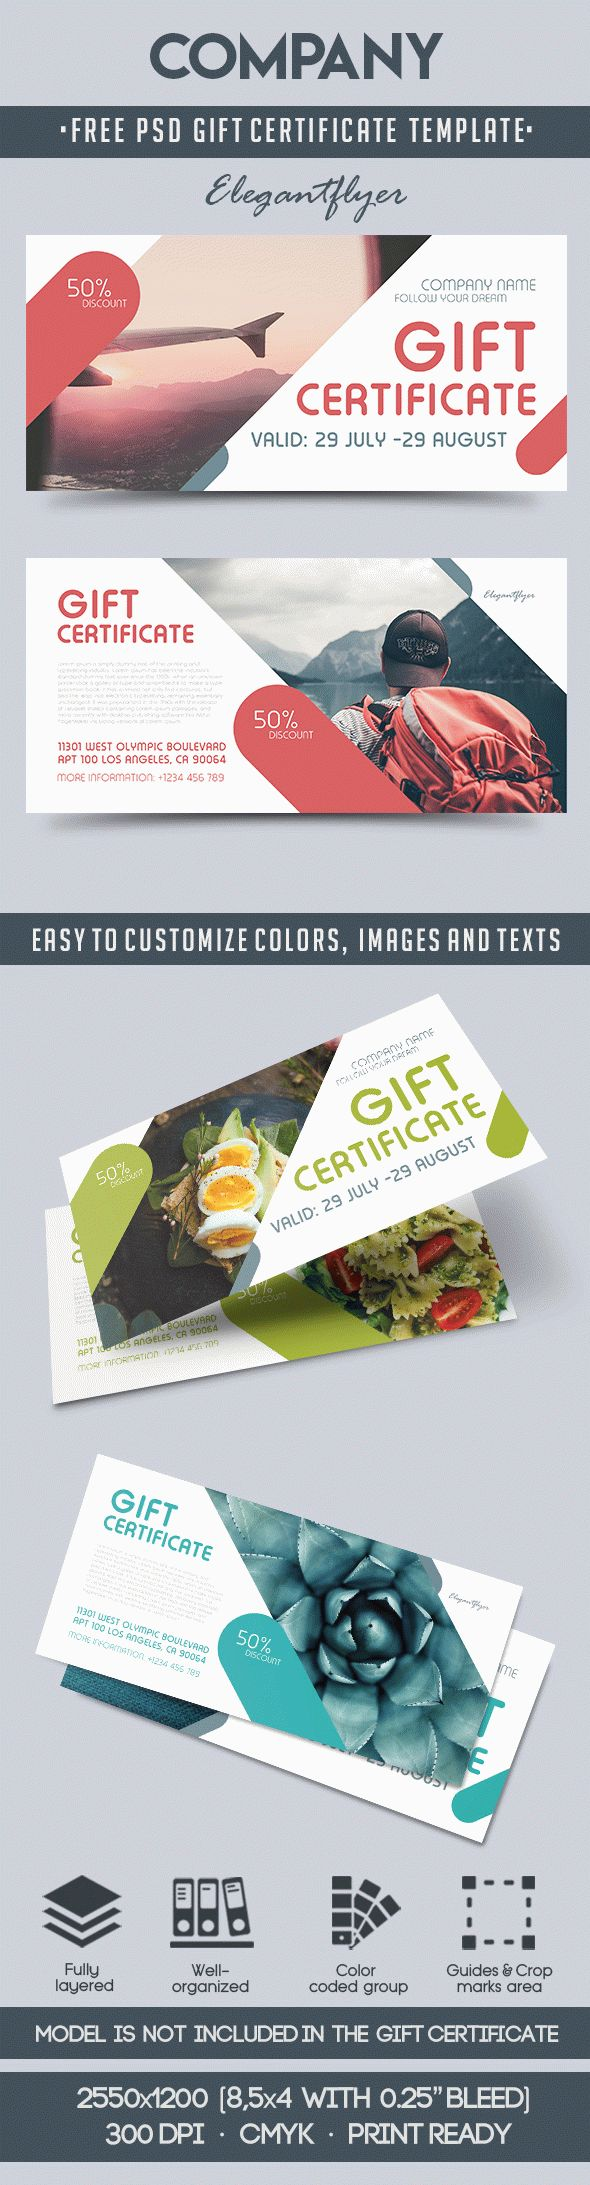 Company – Free Gift Certificate PSD Template